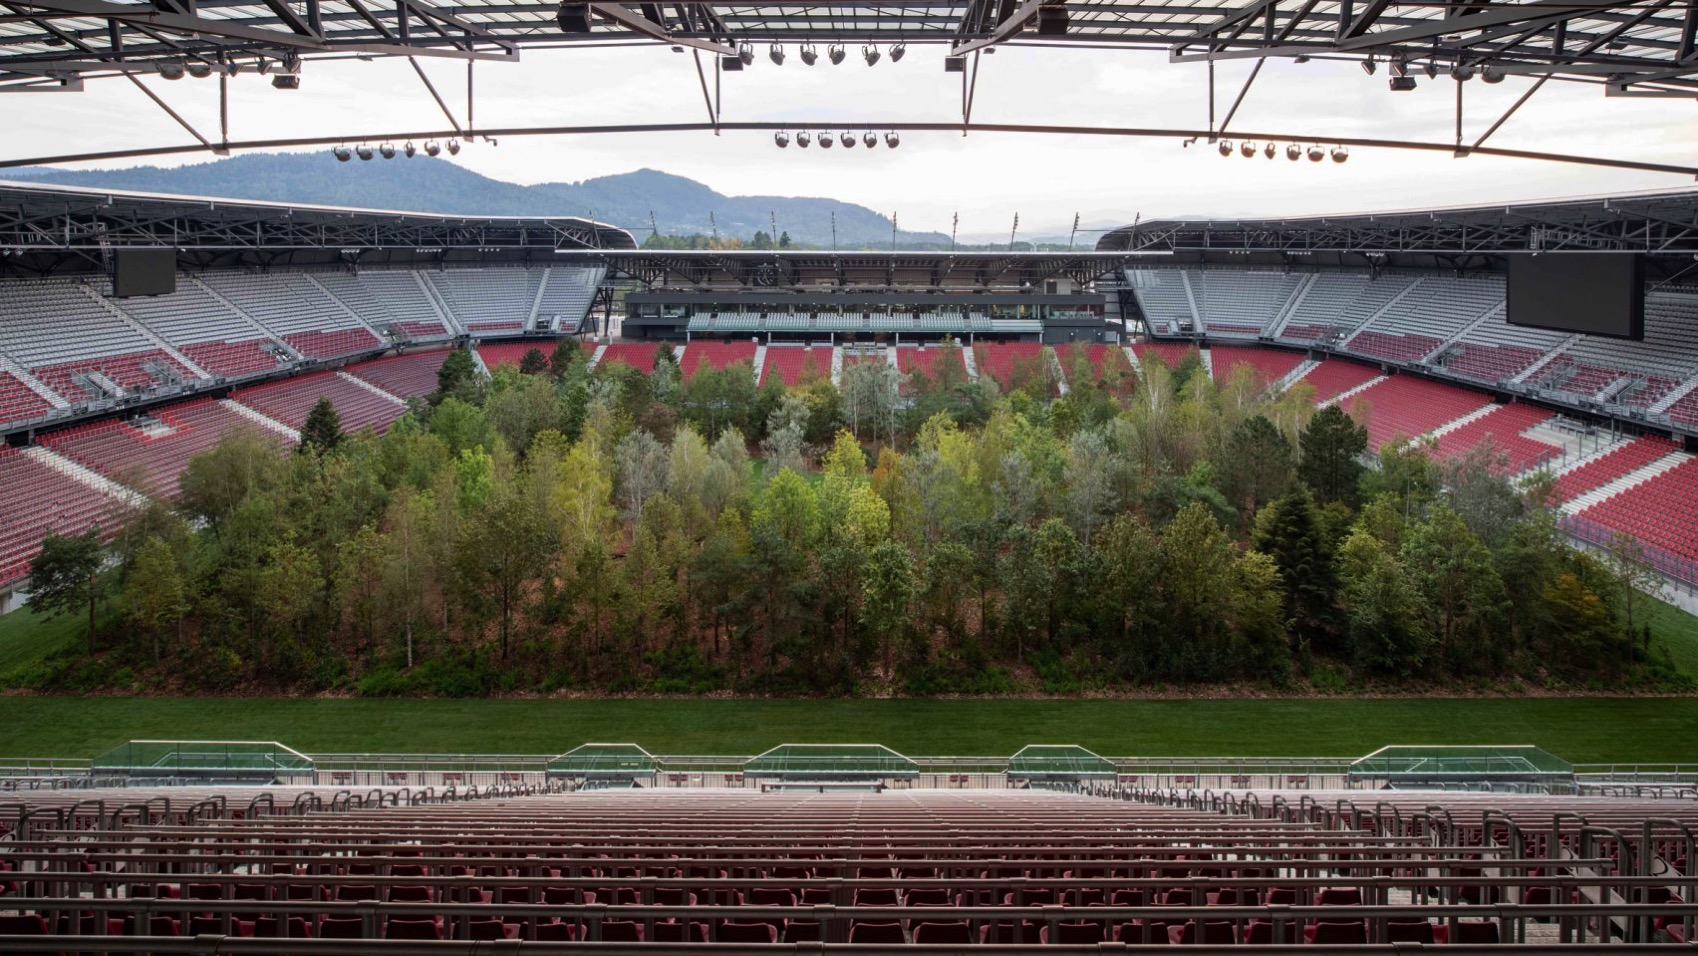 Klaus littmann for forest worthsee stadium klagenfurt photo gerhard maurer trees installation dezeen 2364 hero a 1704x959